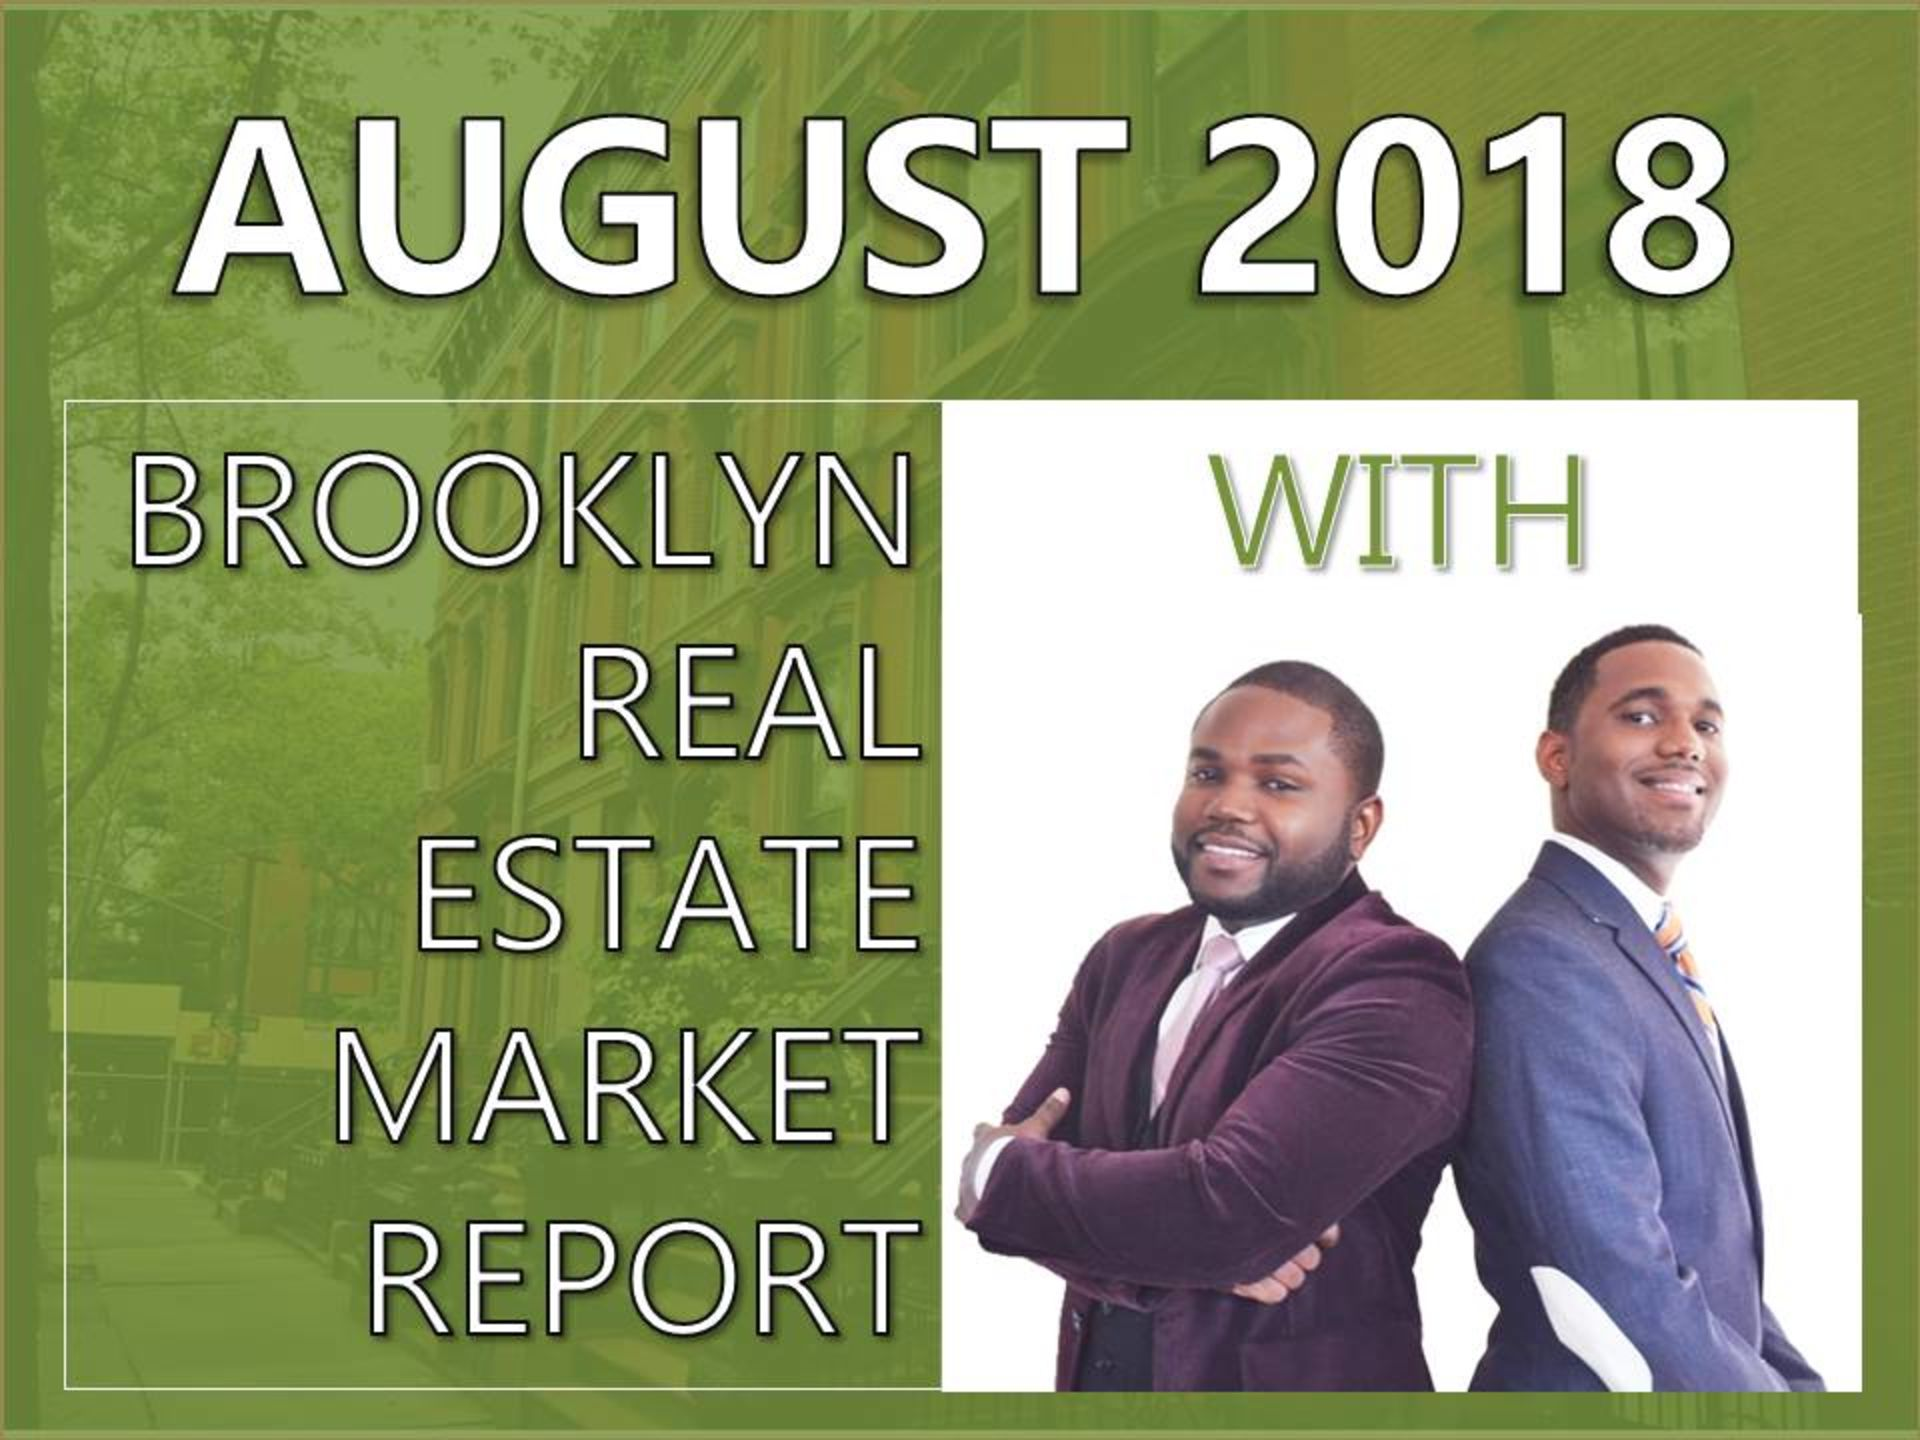 August 2018 Brooklyn Real Estate Market Report